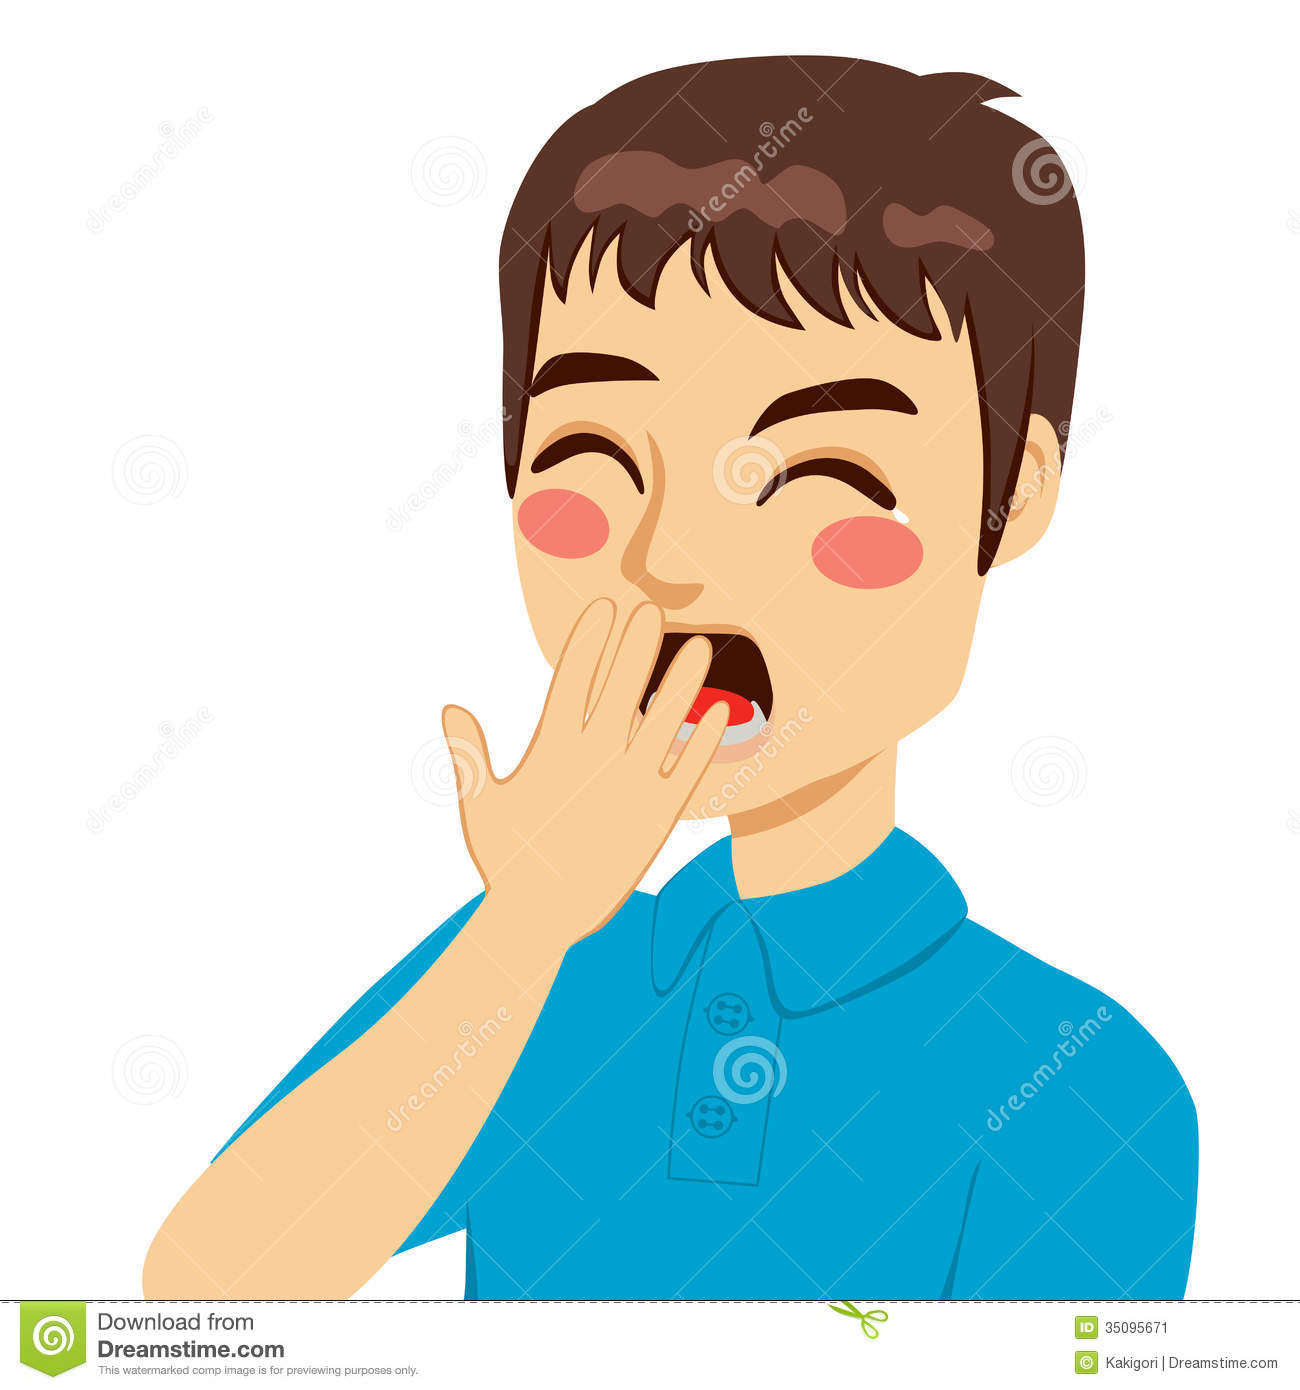 Yawn Guy Stock Illustrations 54 Yawn Guy Stock Illustrations Vectors Clipart Dreamstime